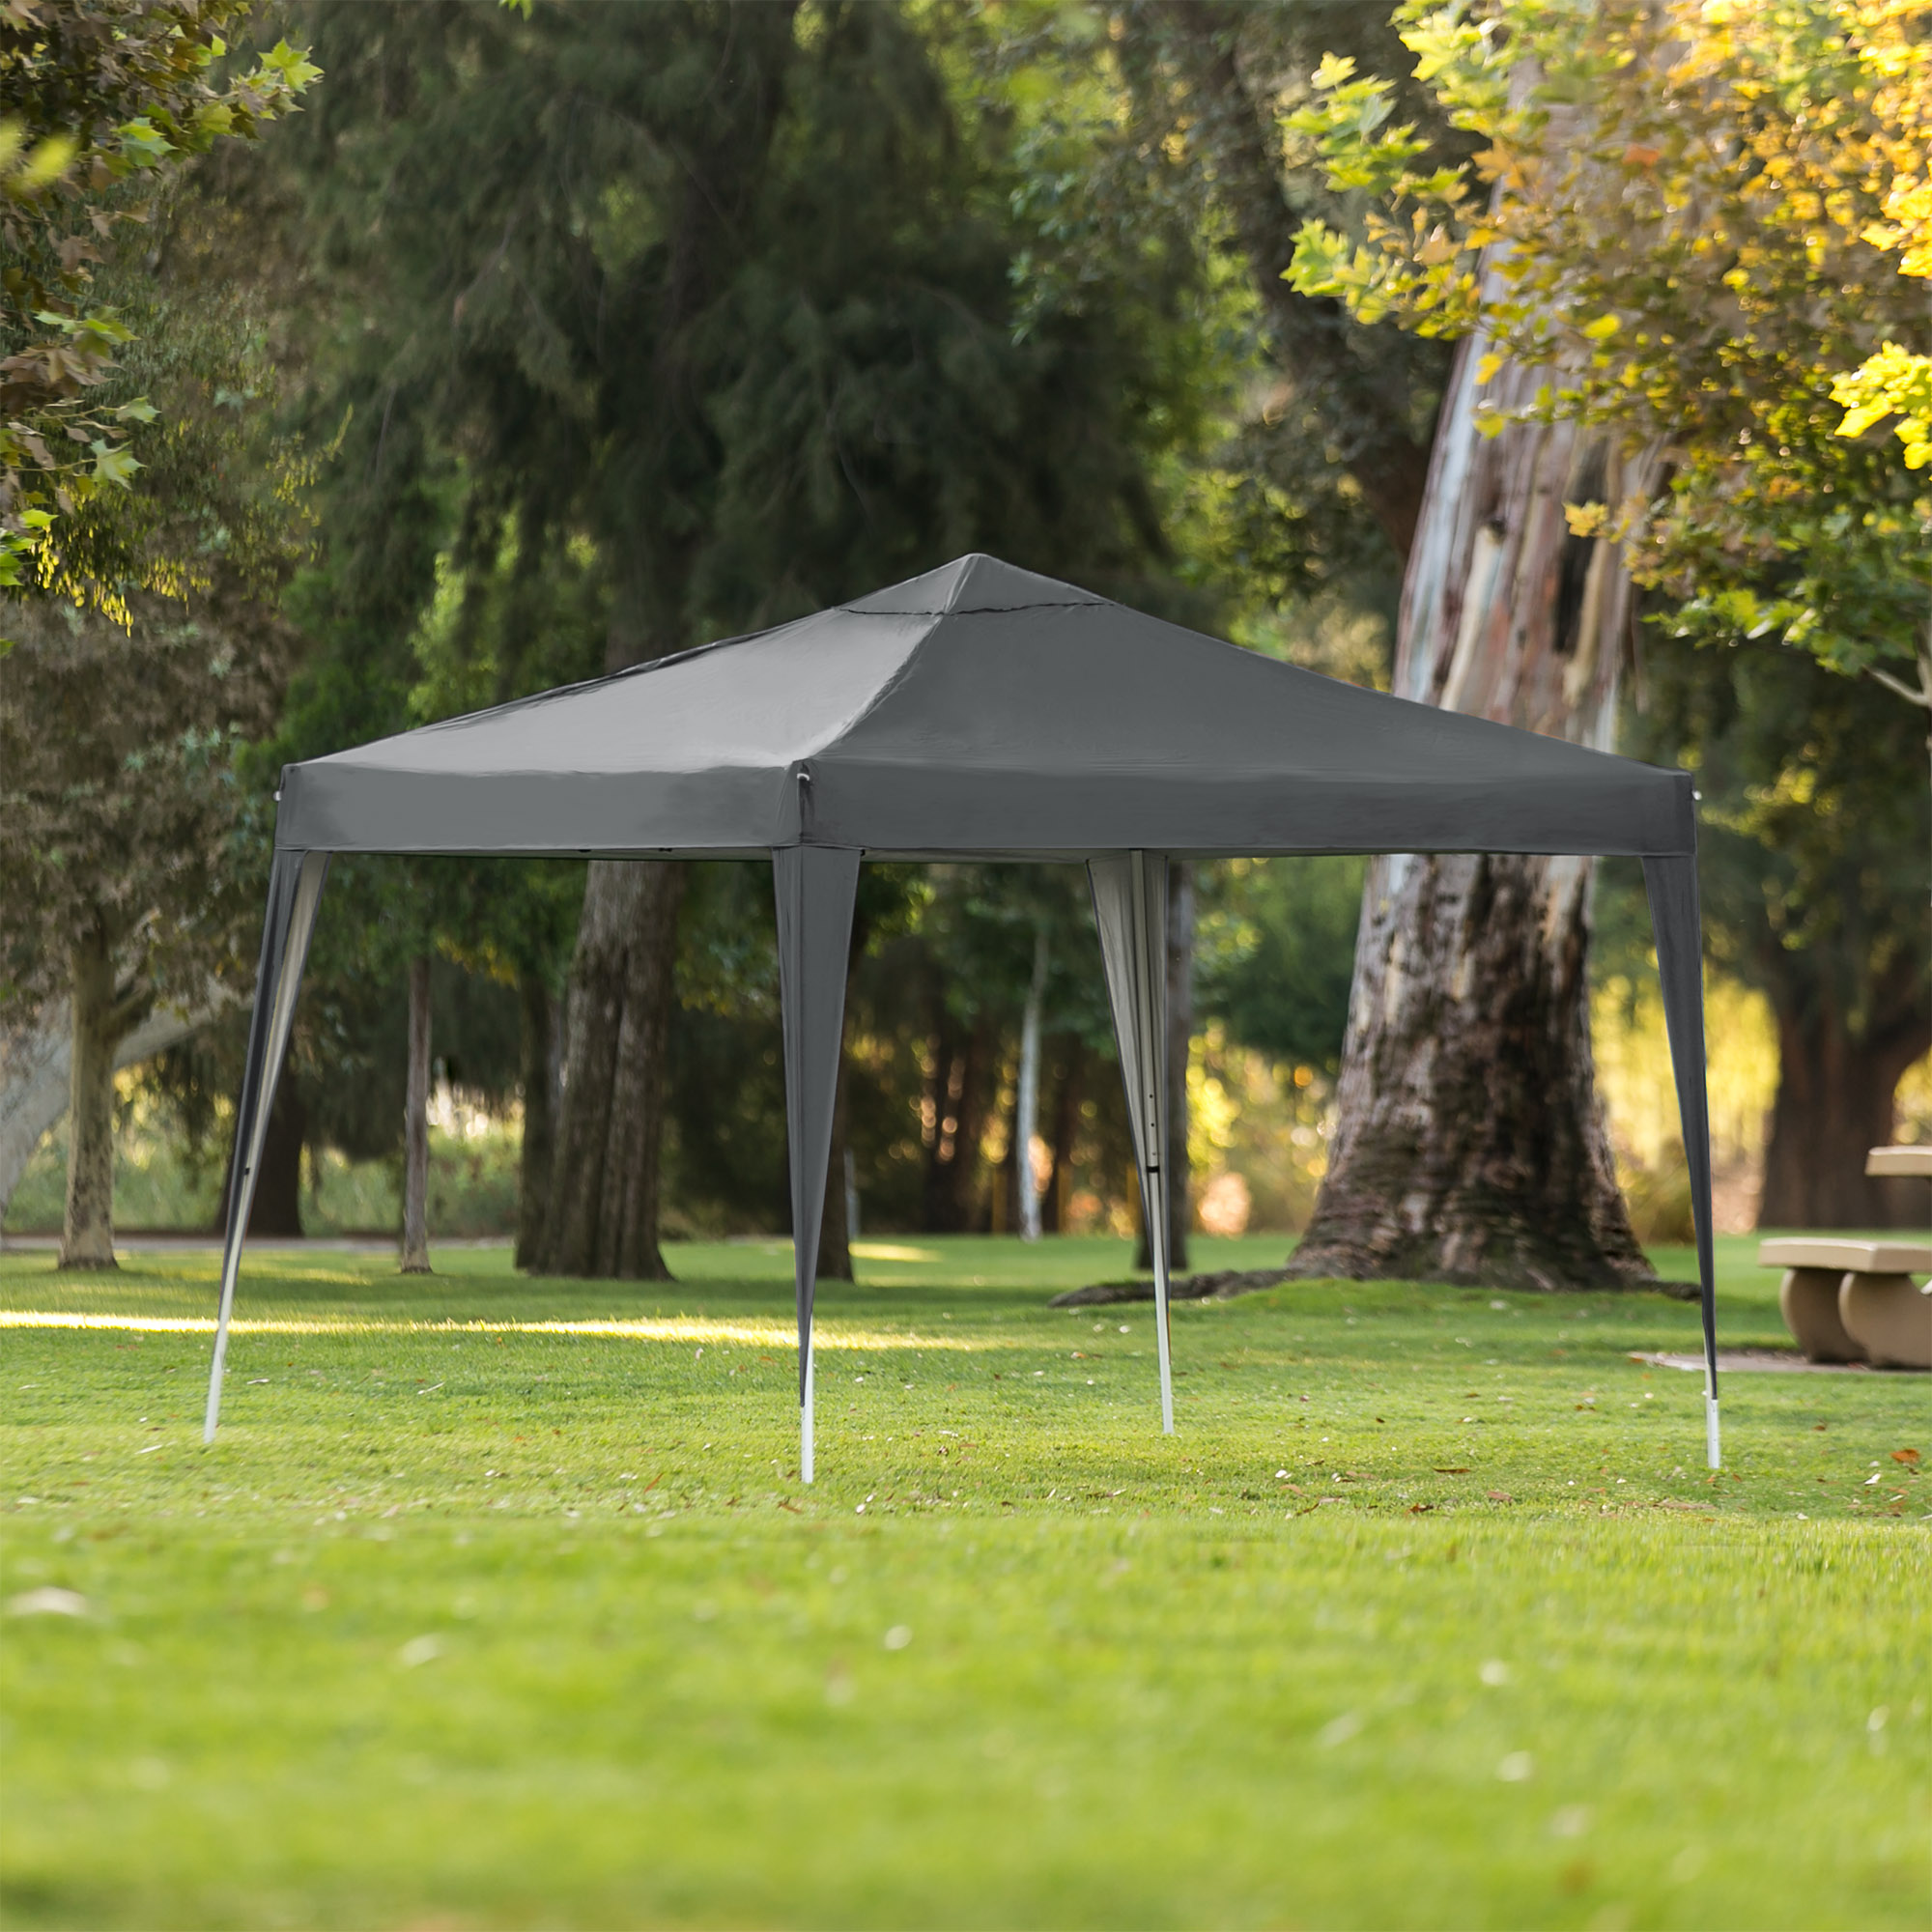 Best Choice Products 10x10ft Outdoor Portable Lightweight ...